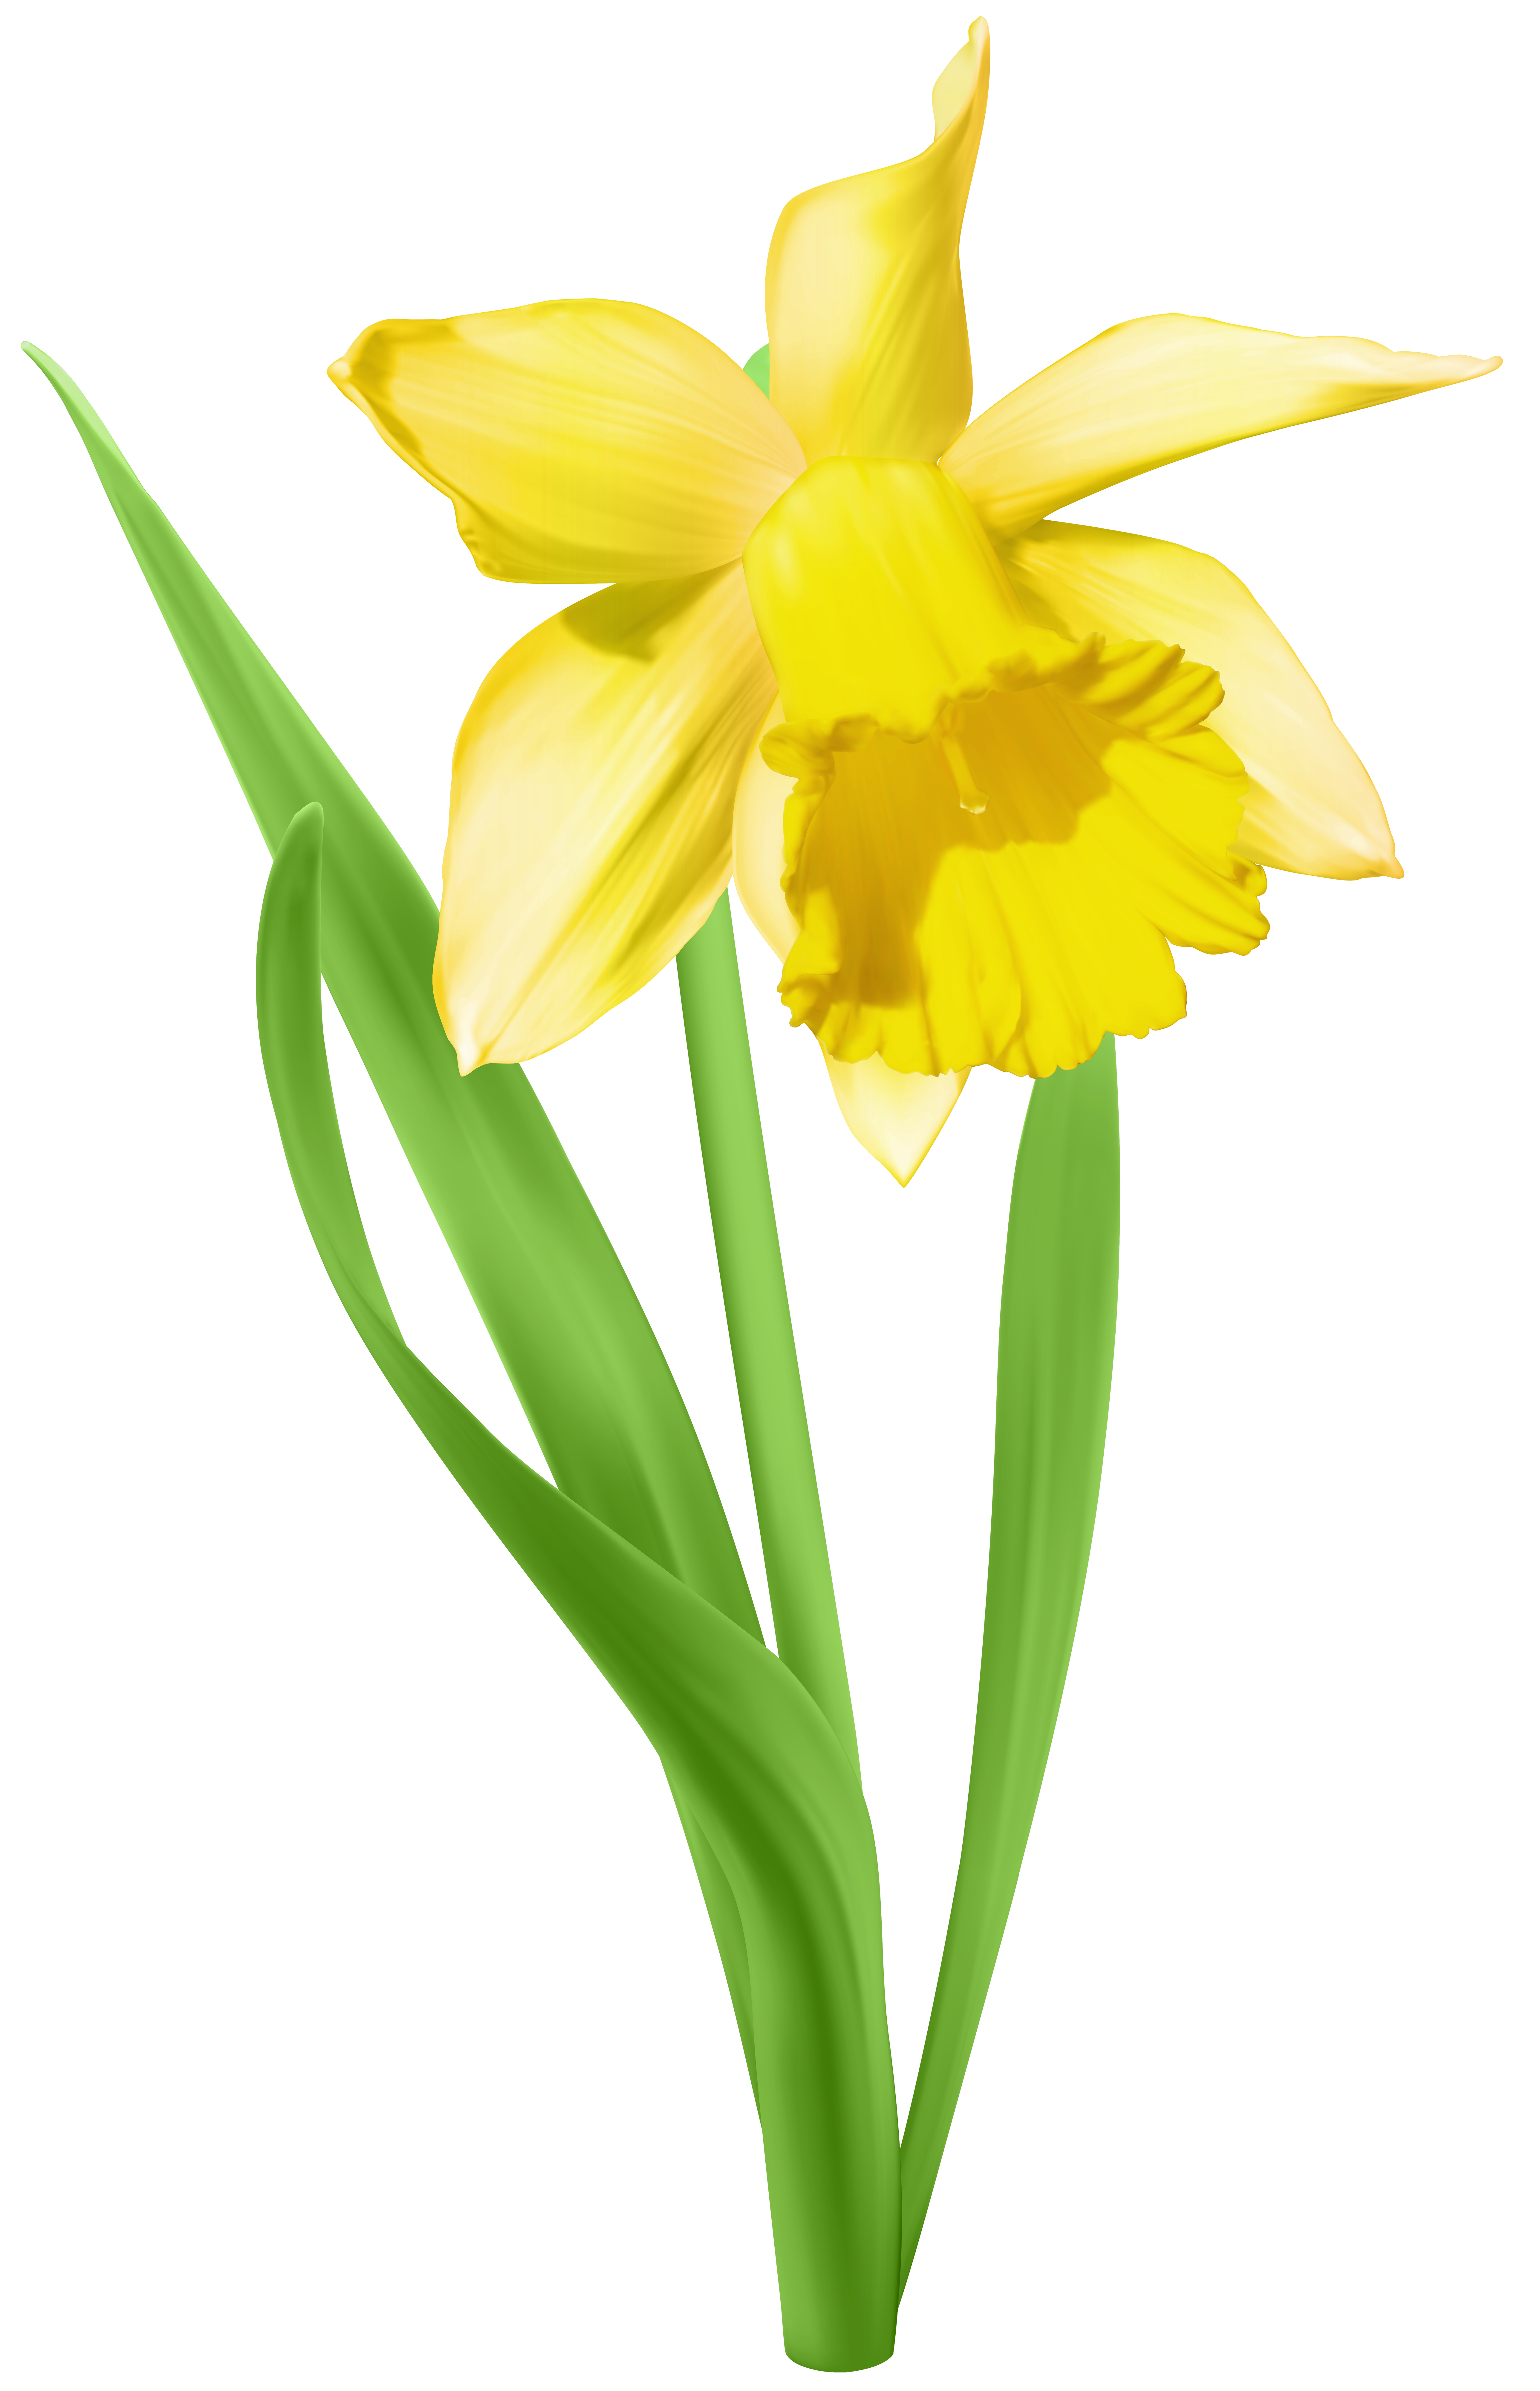 daffodil clipart clipground daffodil clip art royalty free daffodil clipart black and white